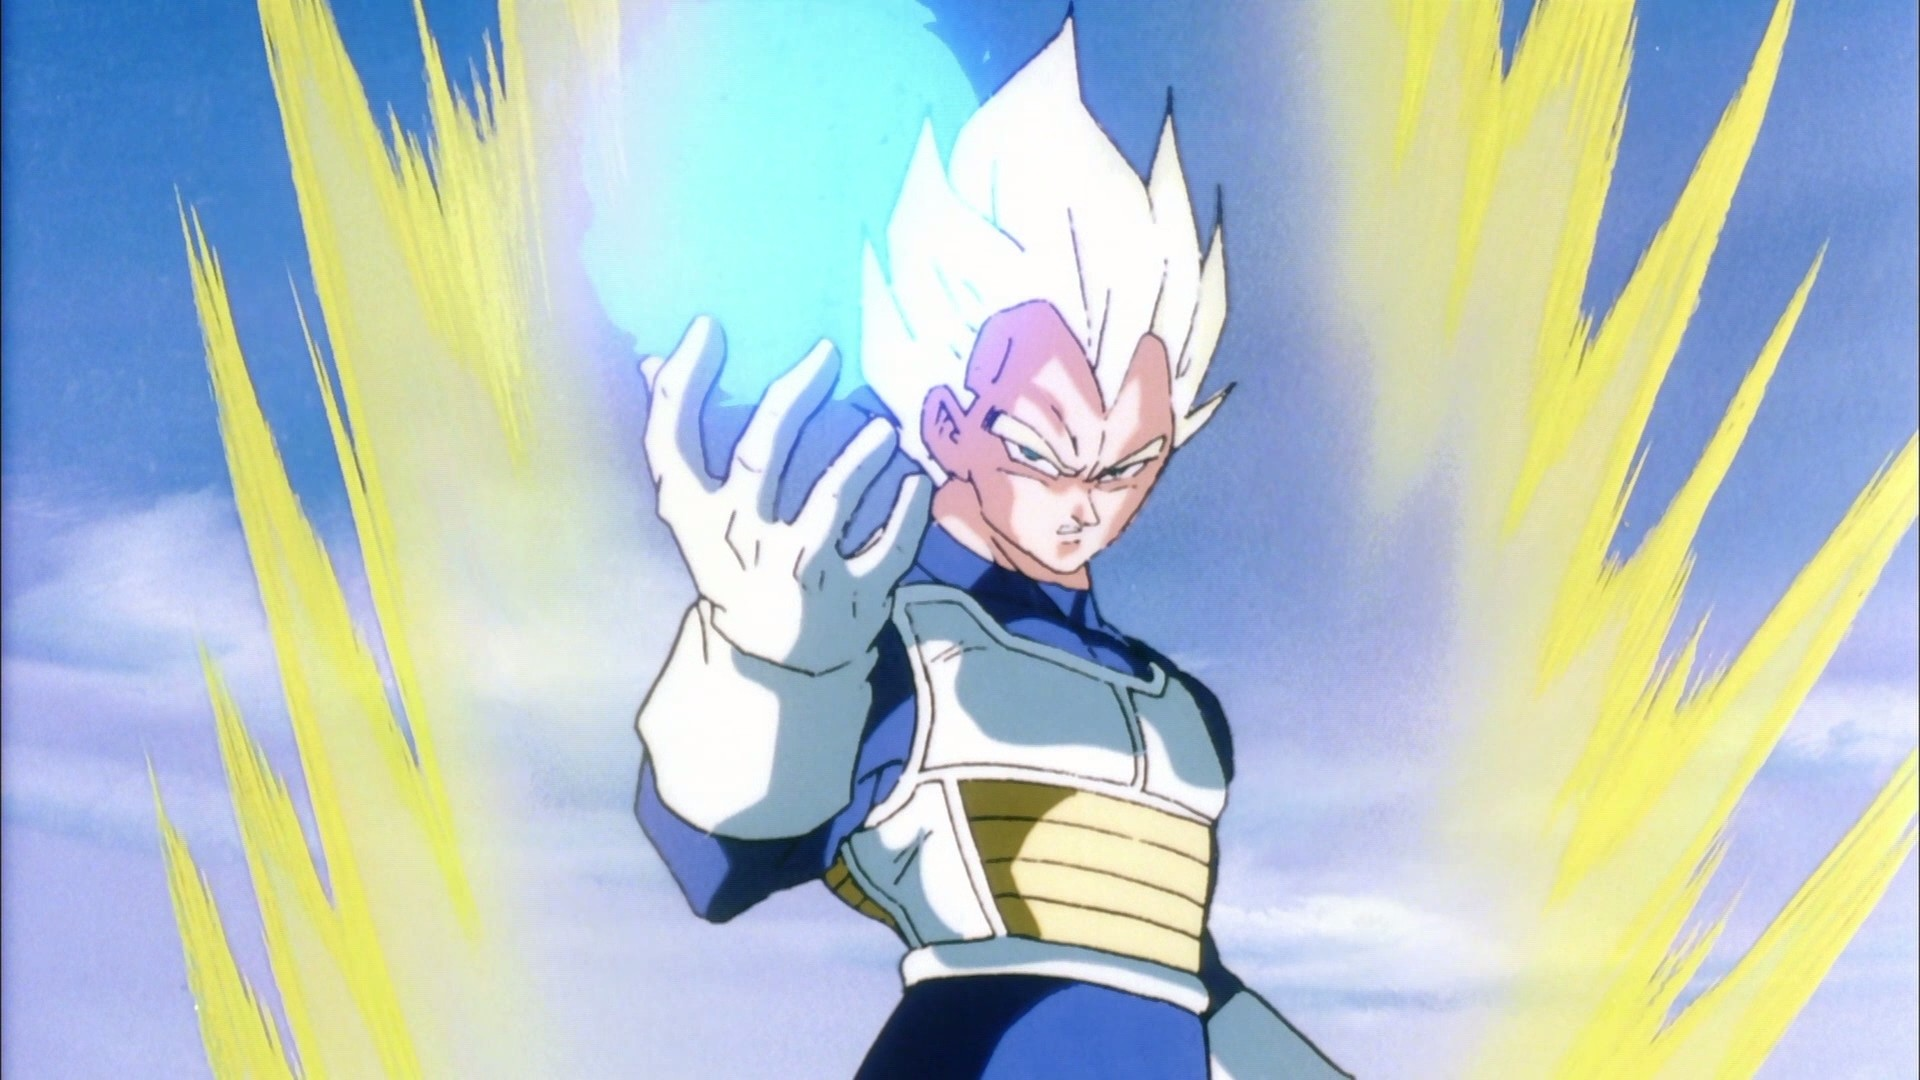 vegeta wallpaper quotes (53+ images)